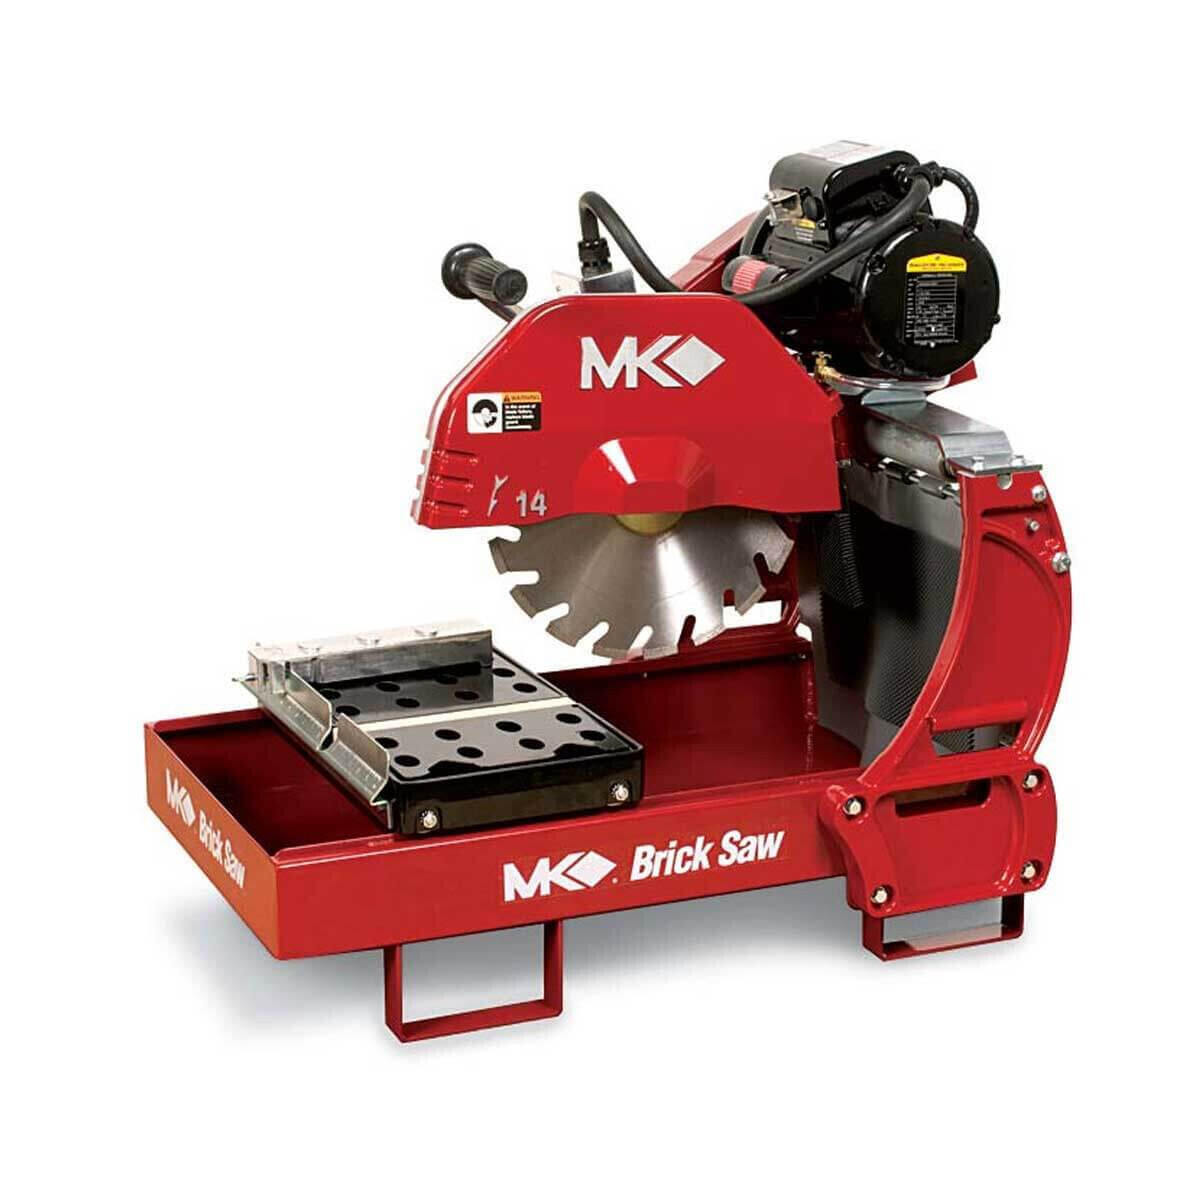 MK-2000 Series Gas Powered Masonry Saw